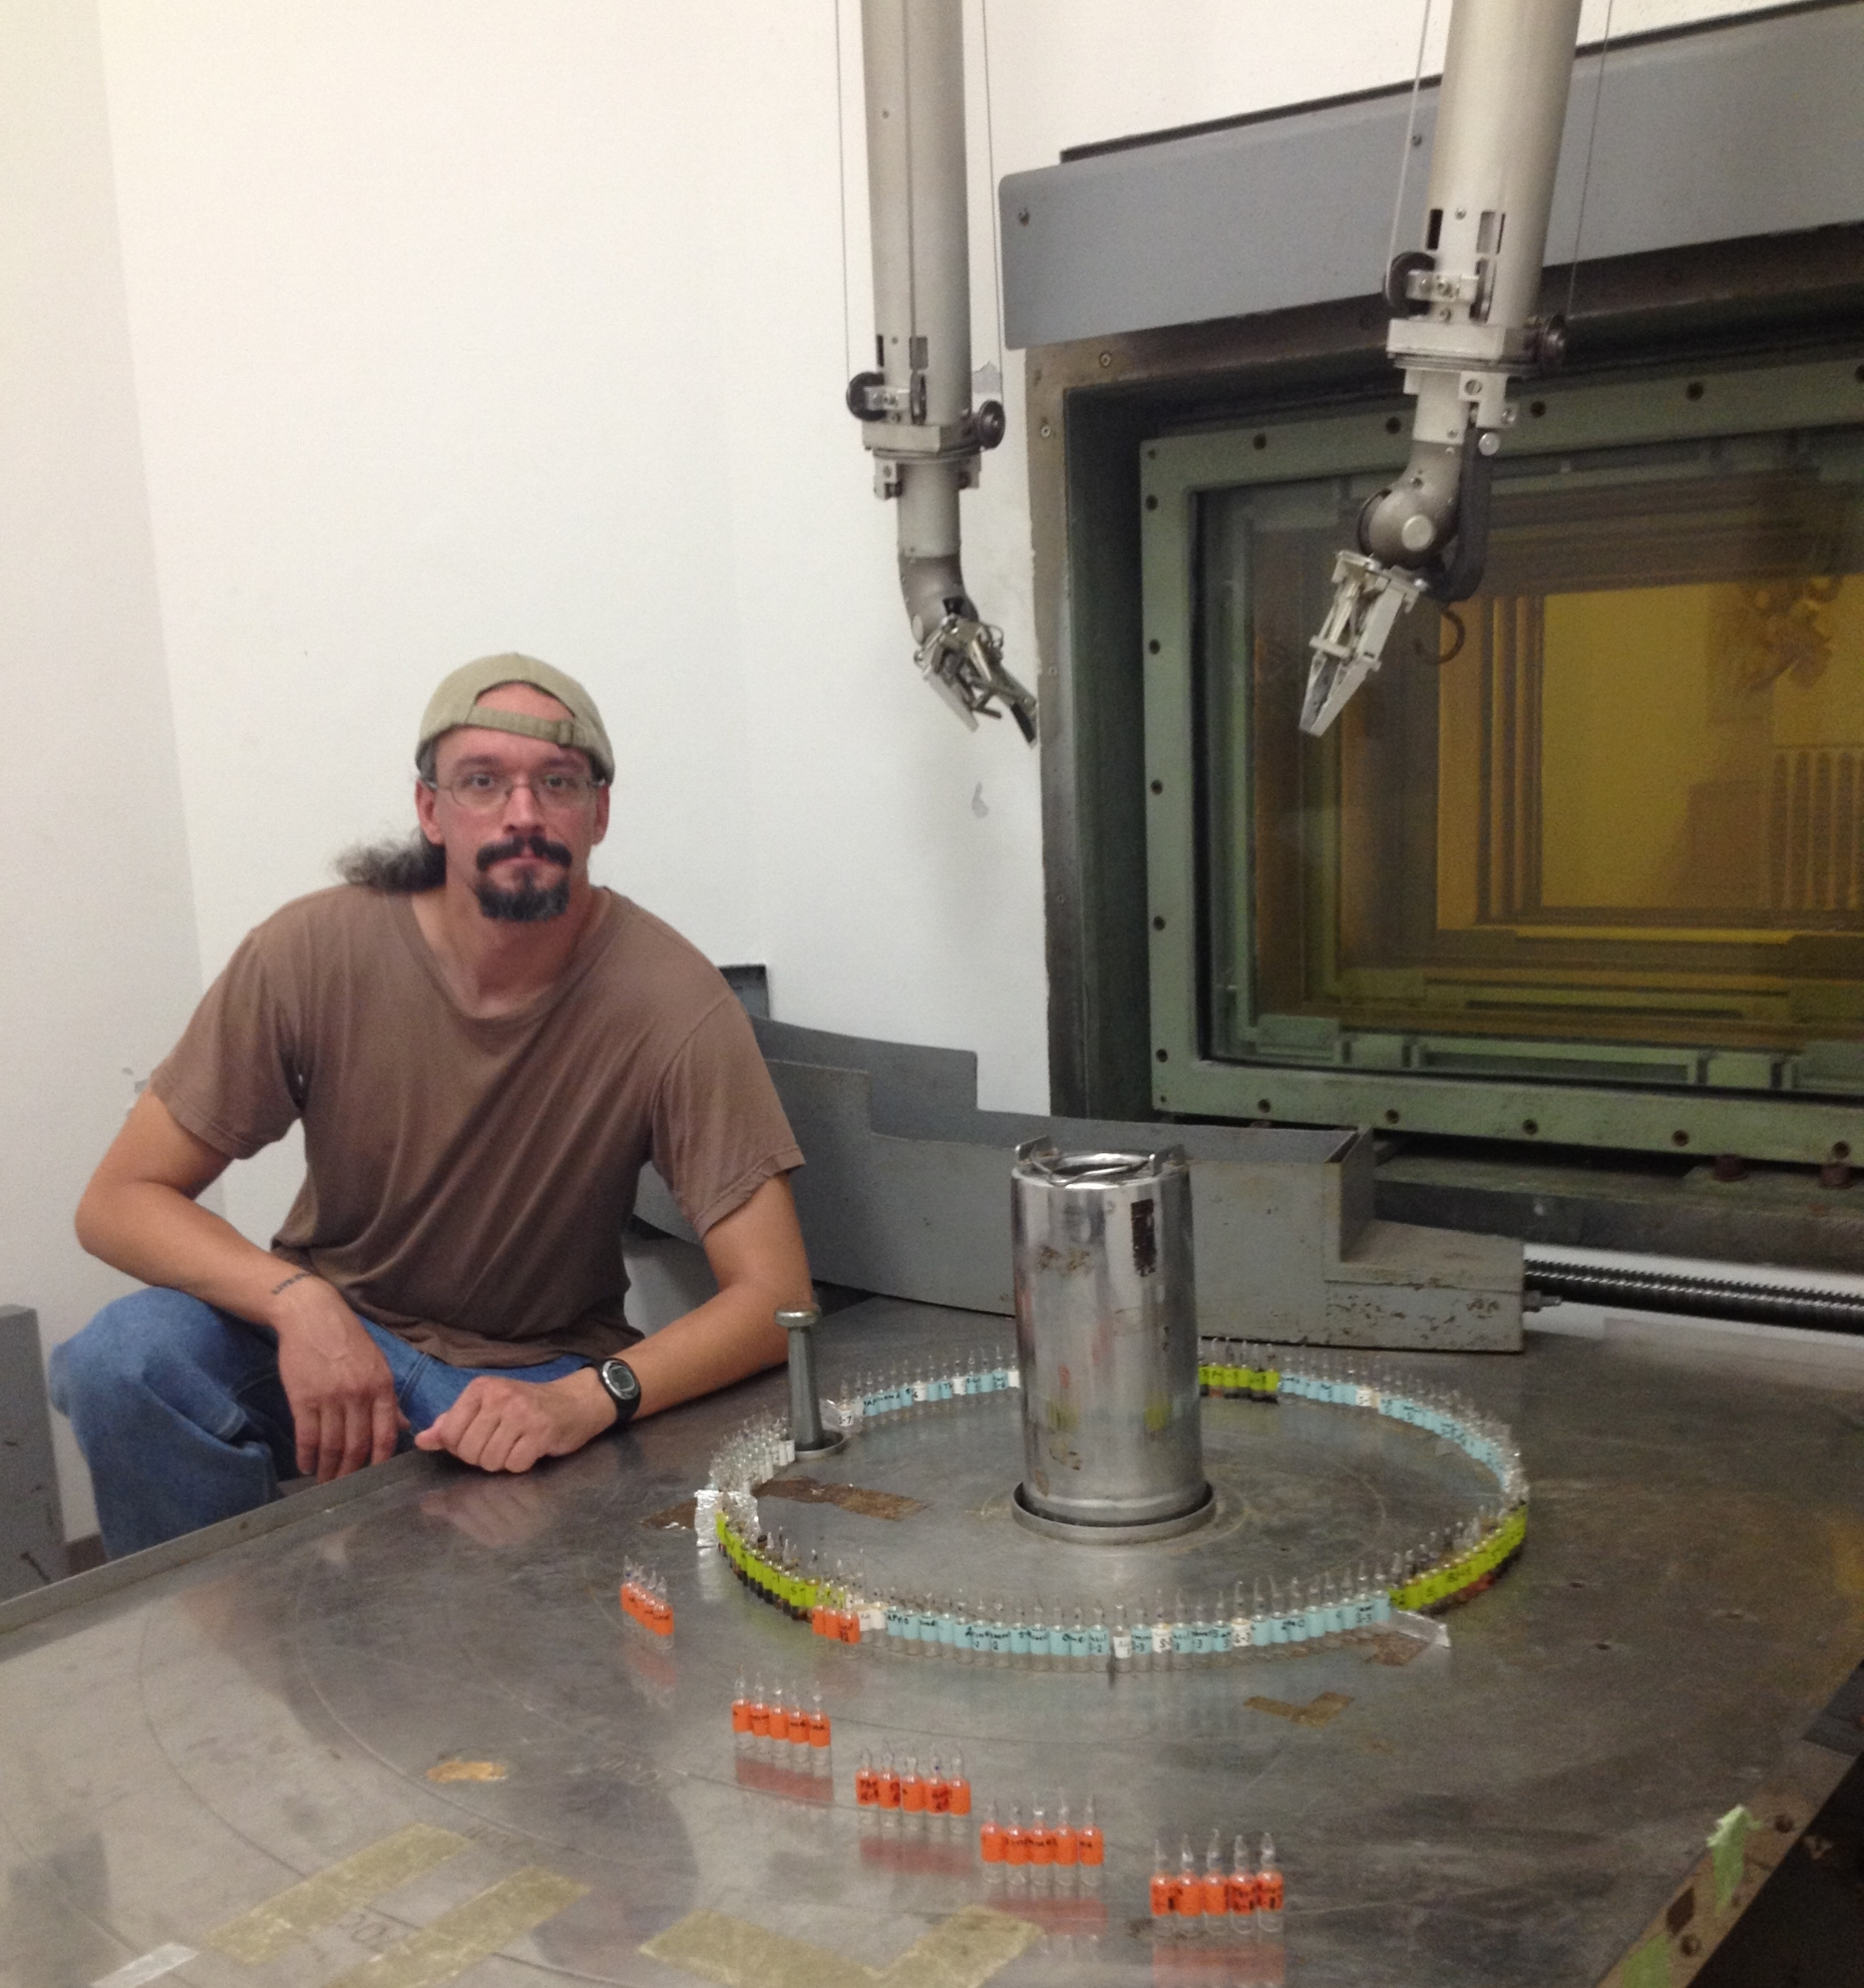 Phillip Hammer with his samples near the gamma radiation source at the Tokyo Institute of Technology.